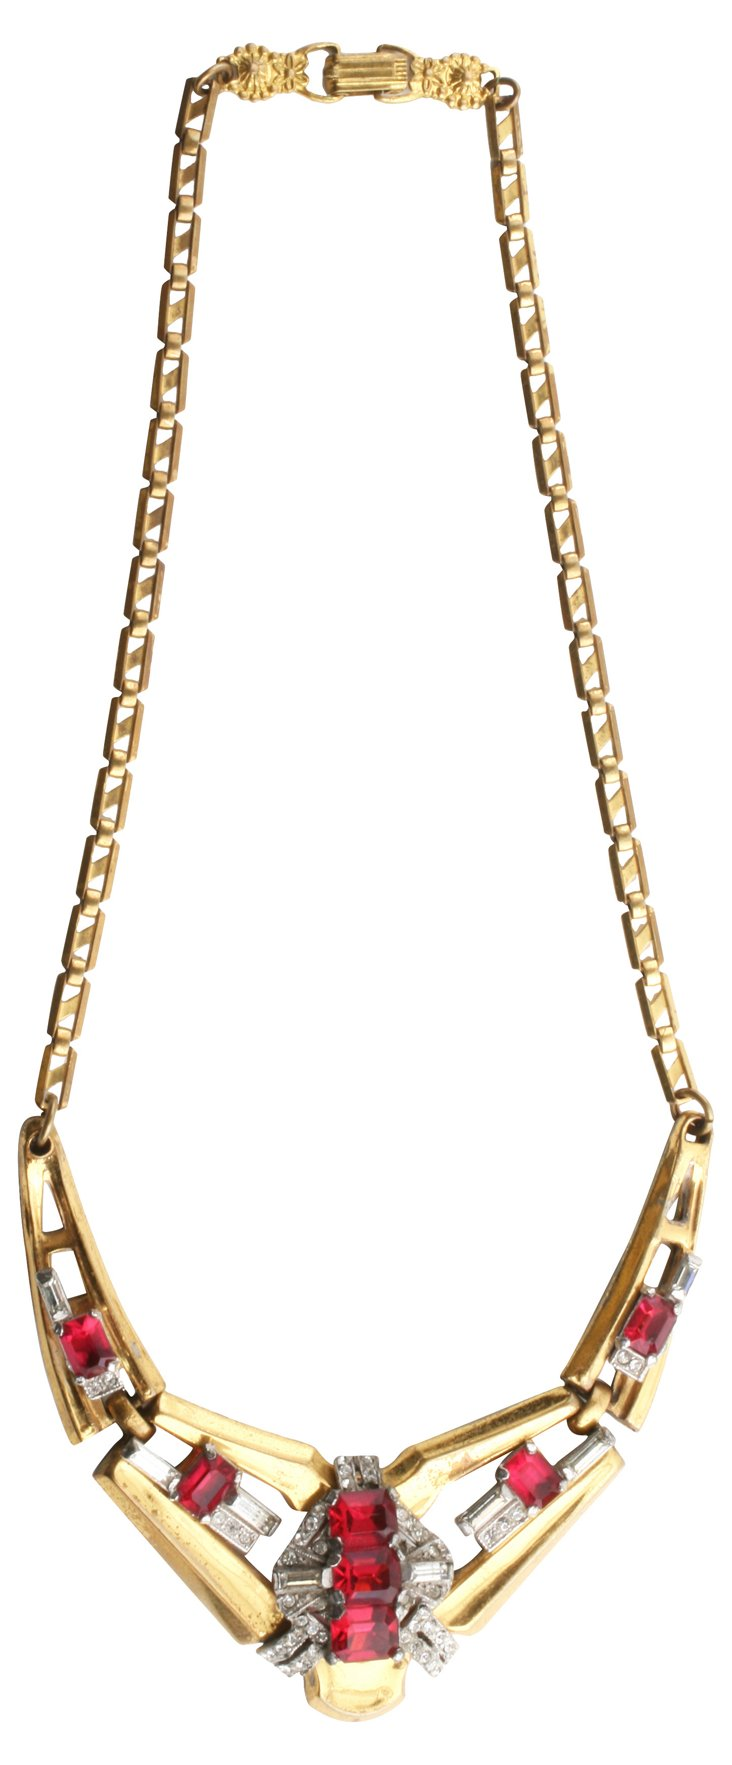 1940s McClelland Barclay Necklace